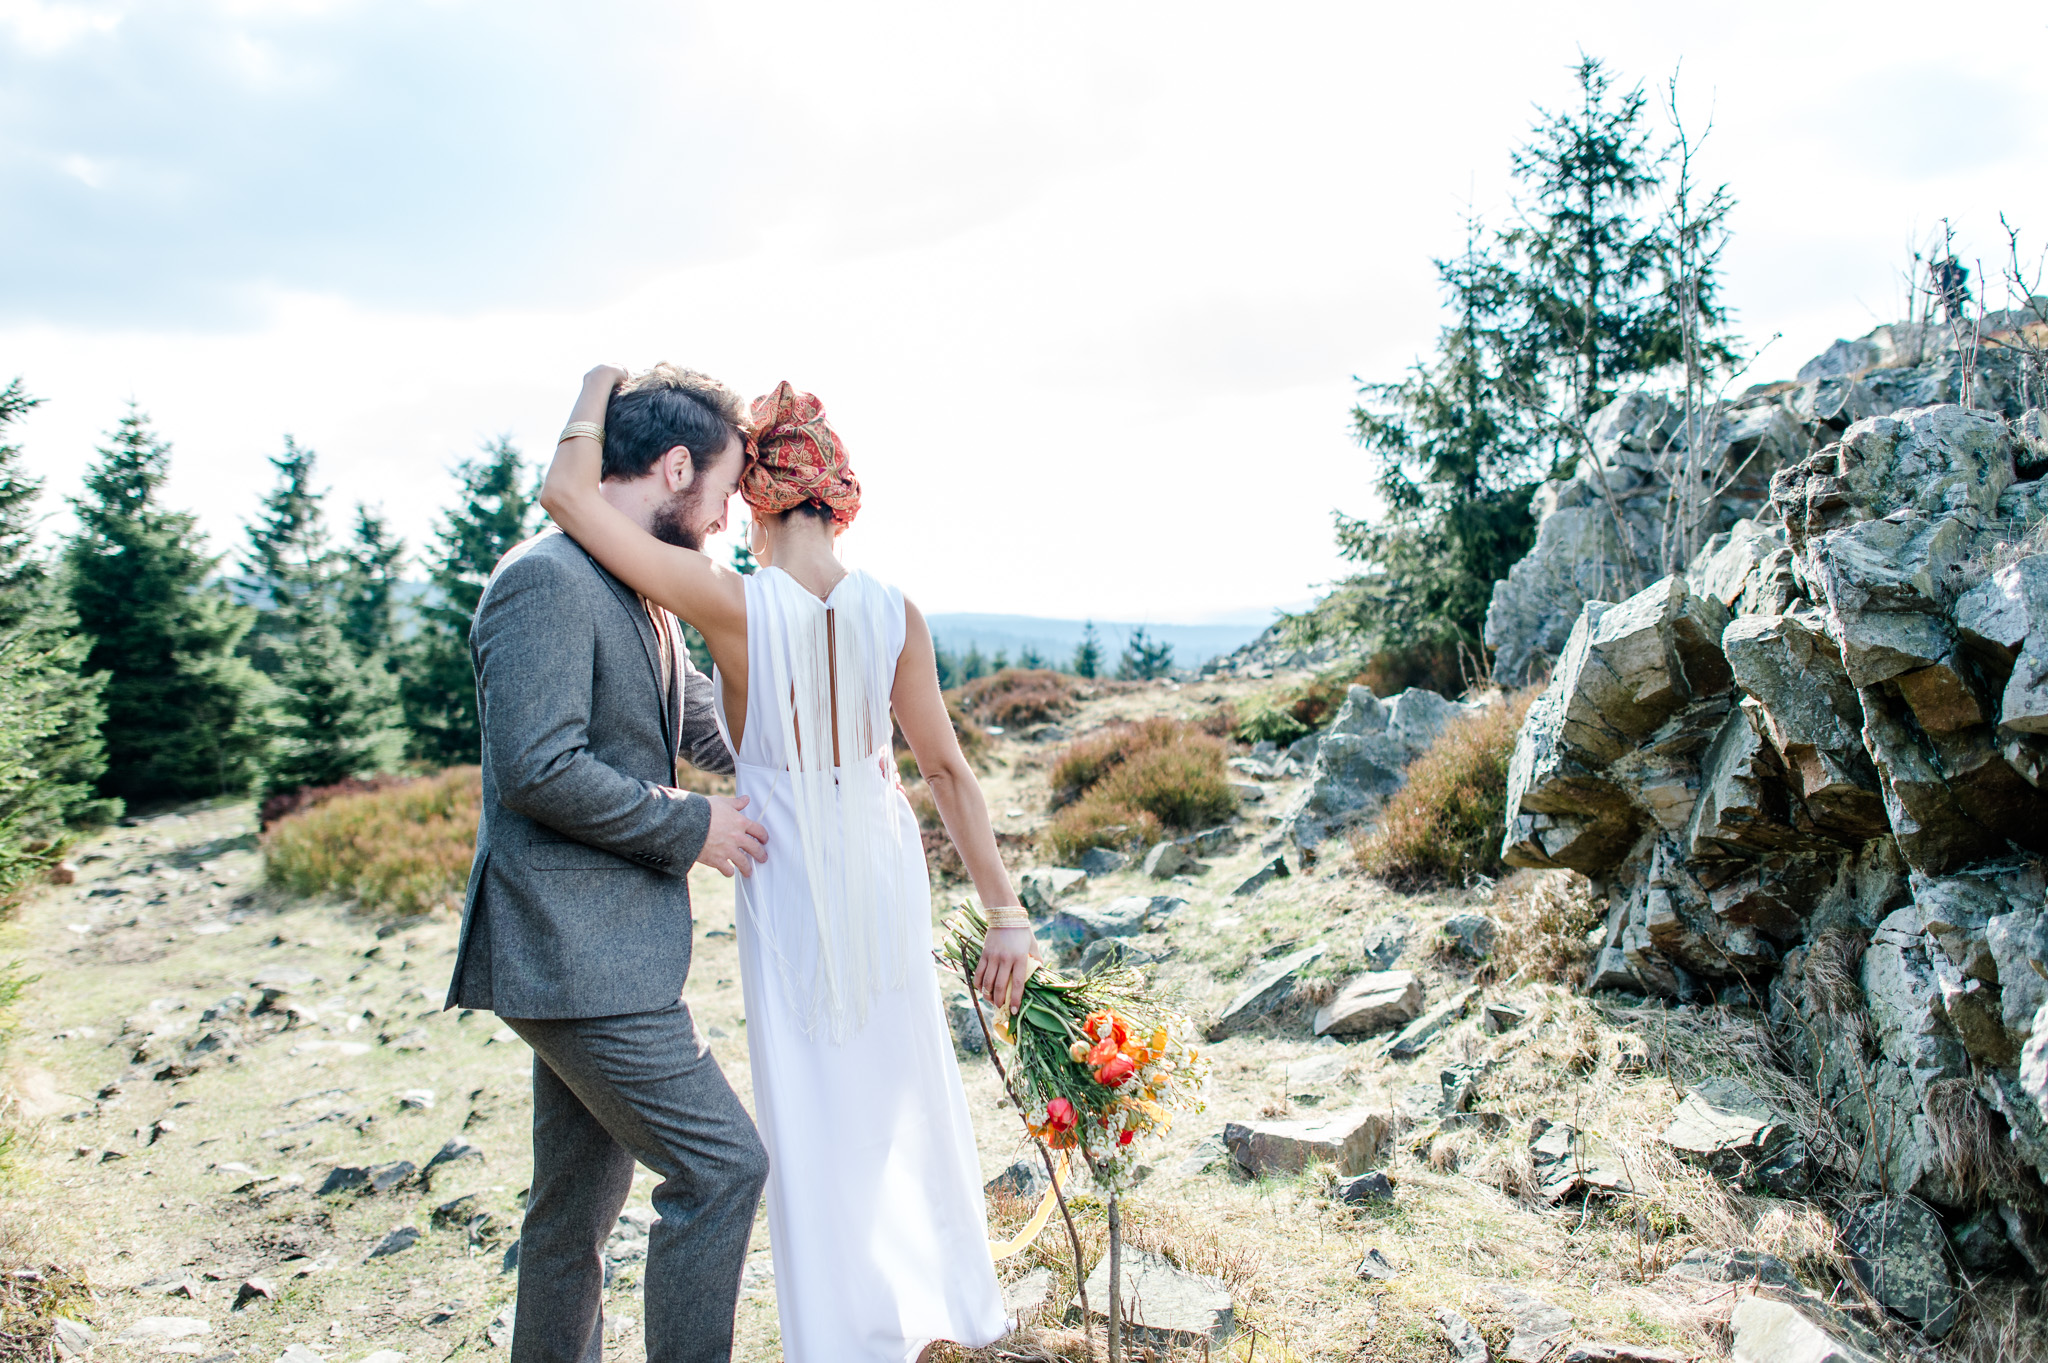 hochzeitsfotograf-wedding-photography-harz-023